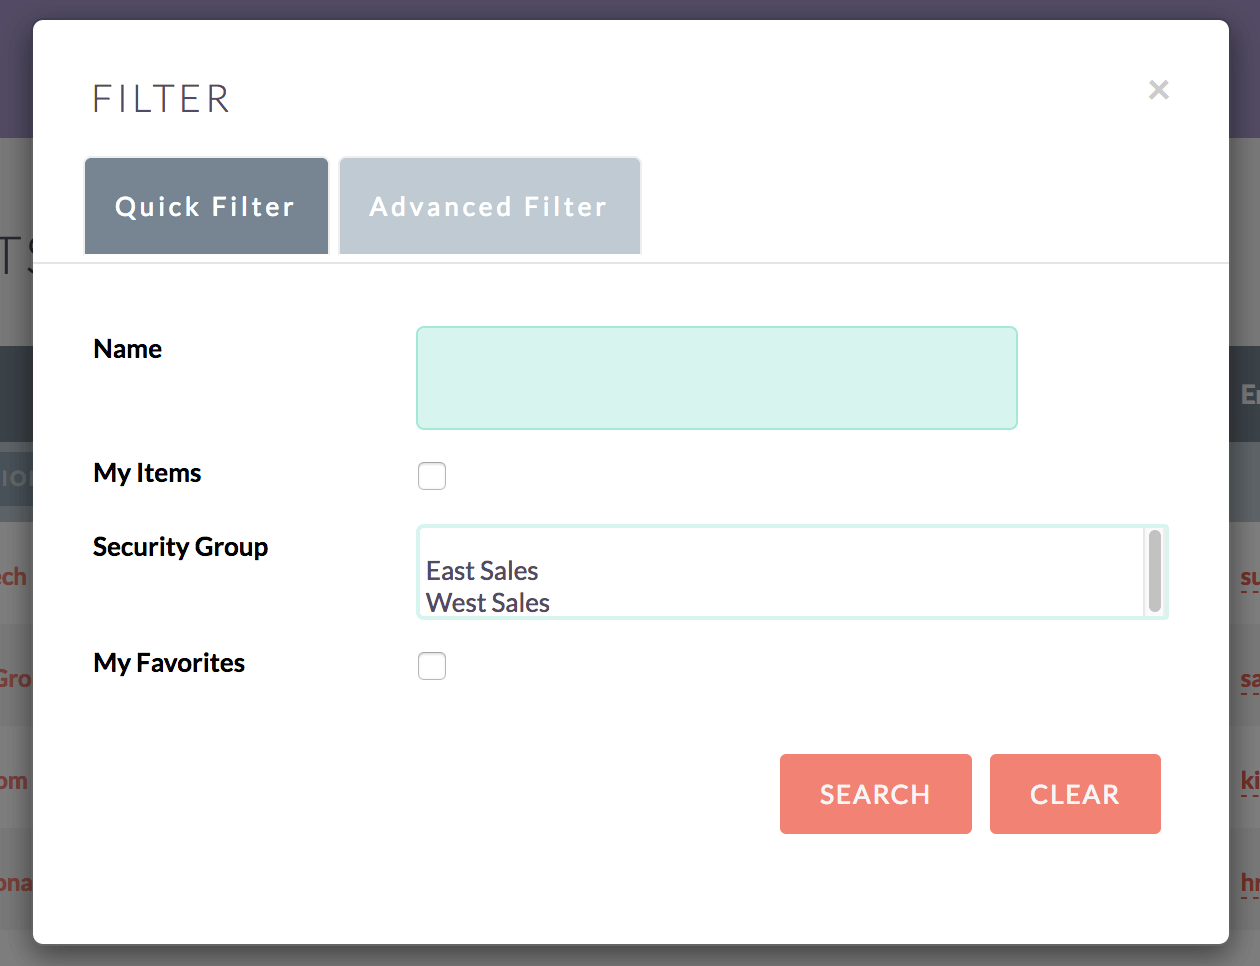 Filter Search by Groups